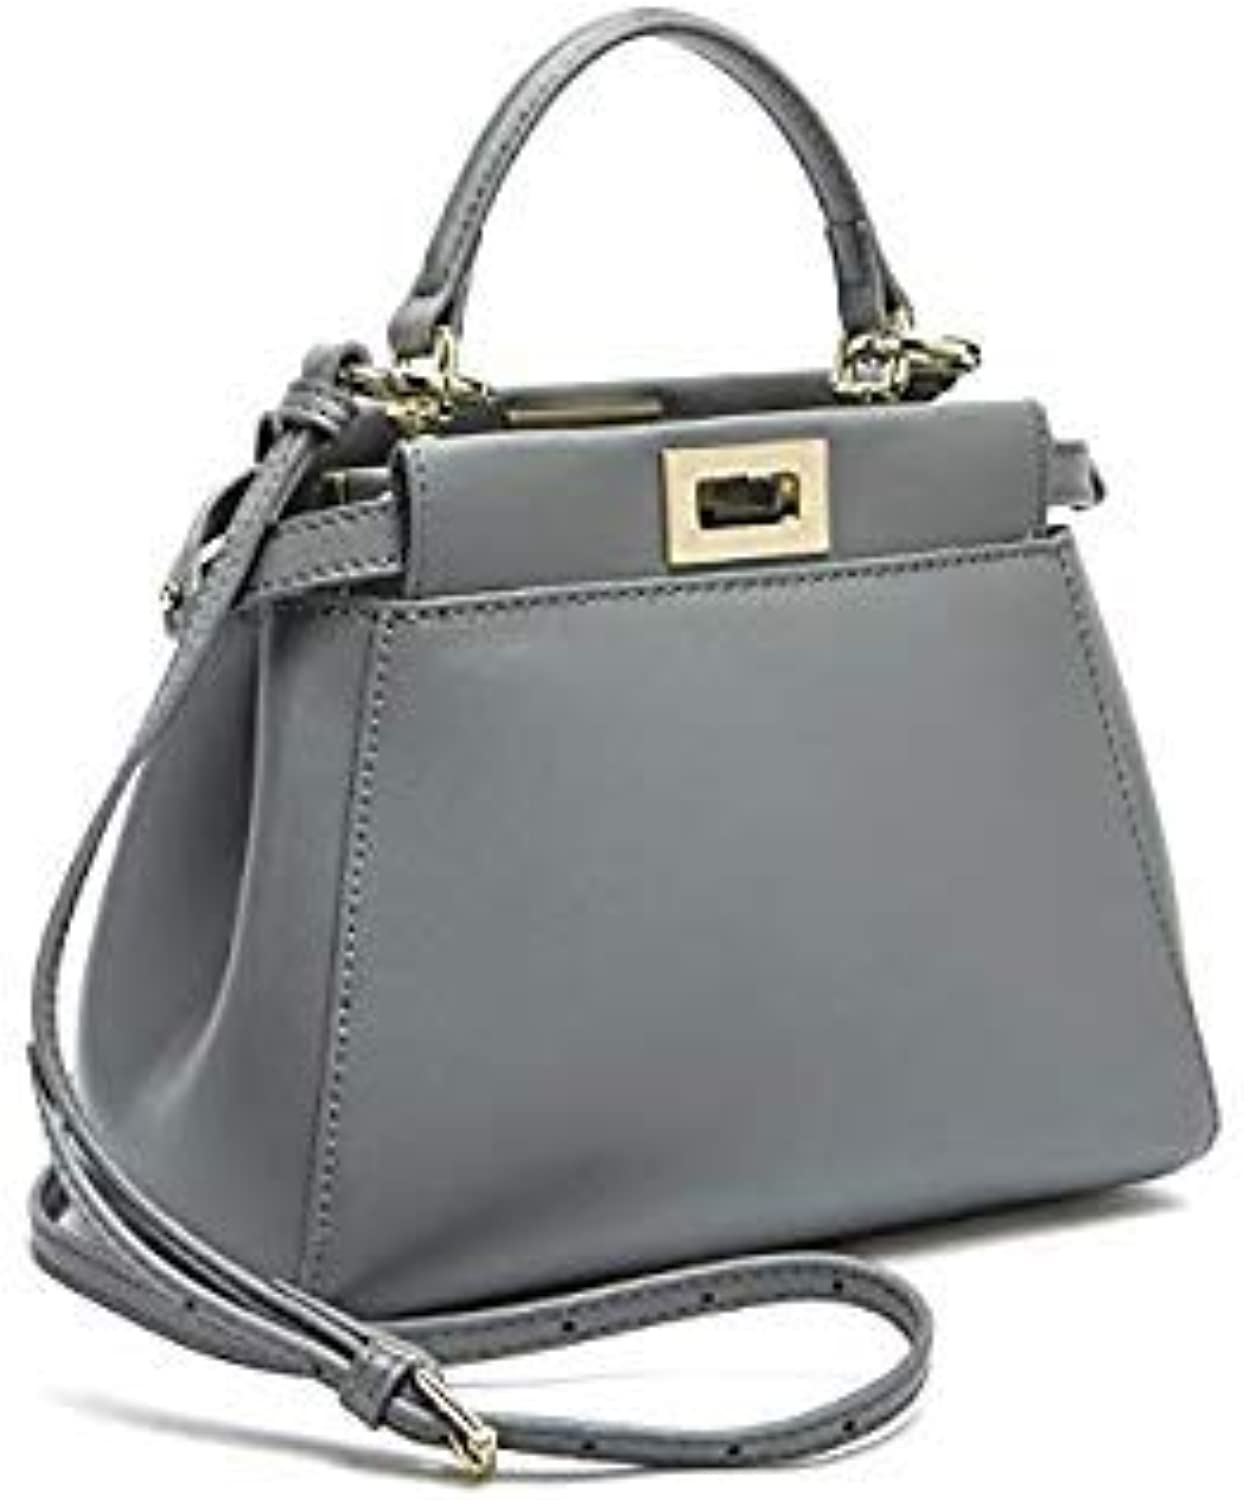 Bloomerang Genuine Leather Peekaboo Bag Luxury Handbags Women Messenger Bags Designer High Quality Leg Shoulder Bag Crossbody Tote Sac color Grey 24cm no Logo